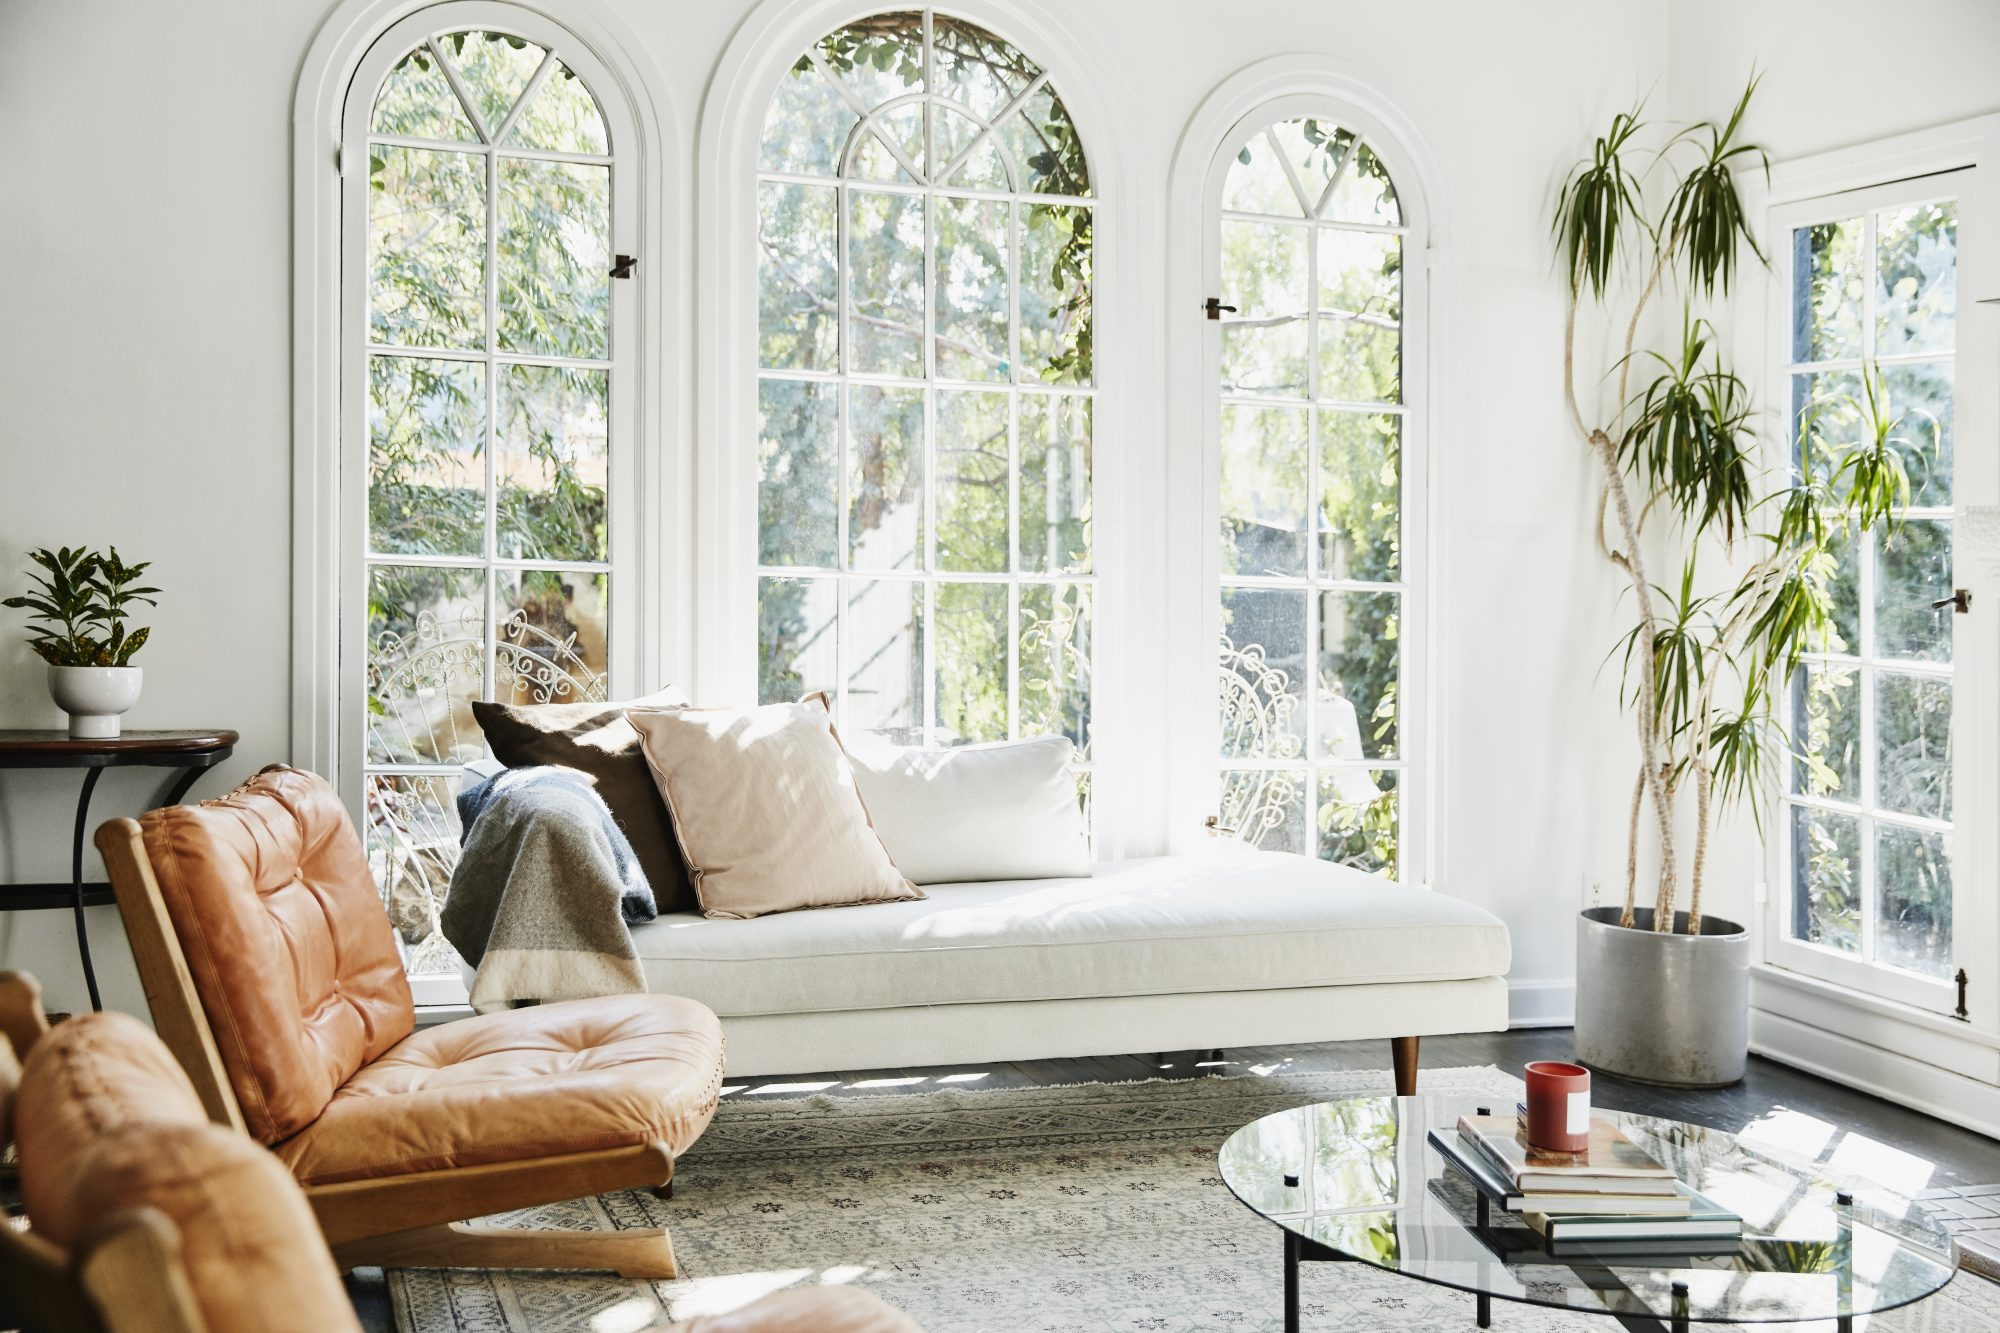 View of living room with houseplants